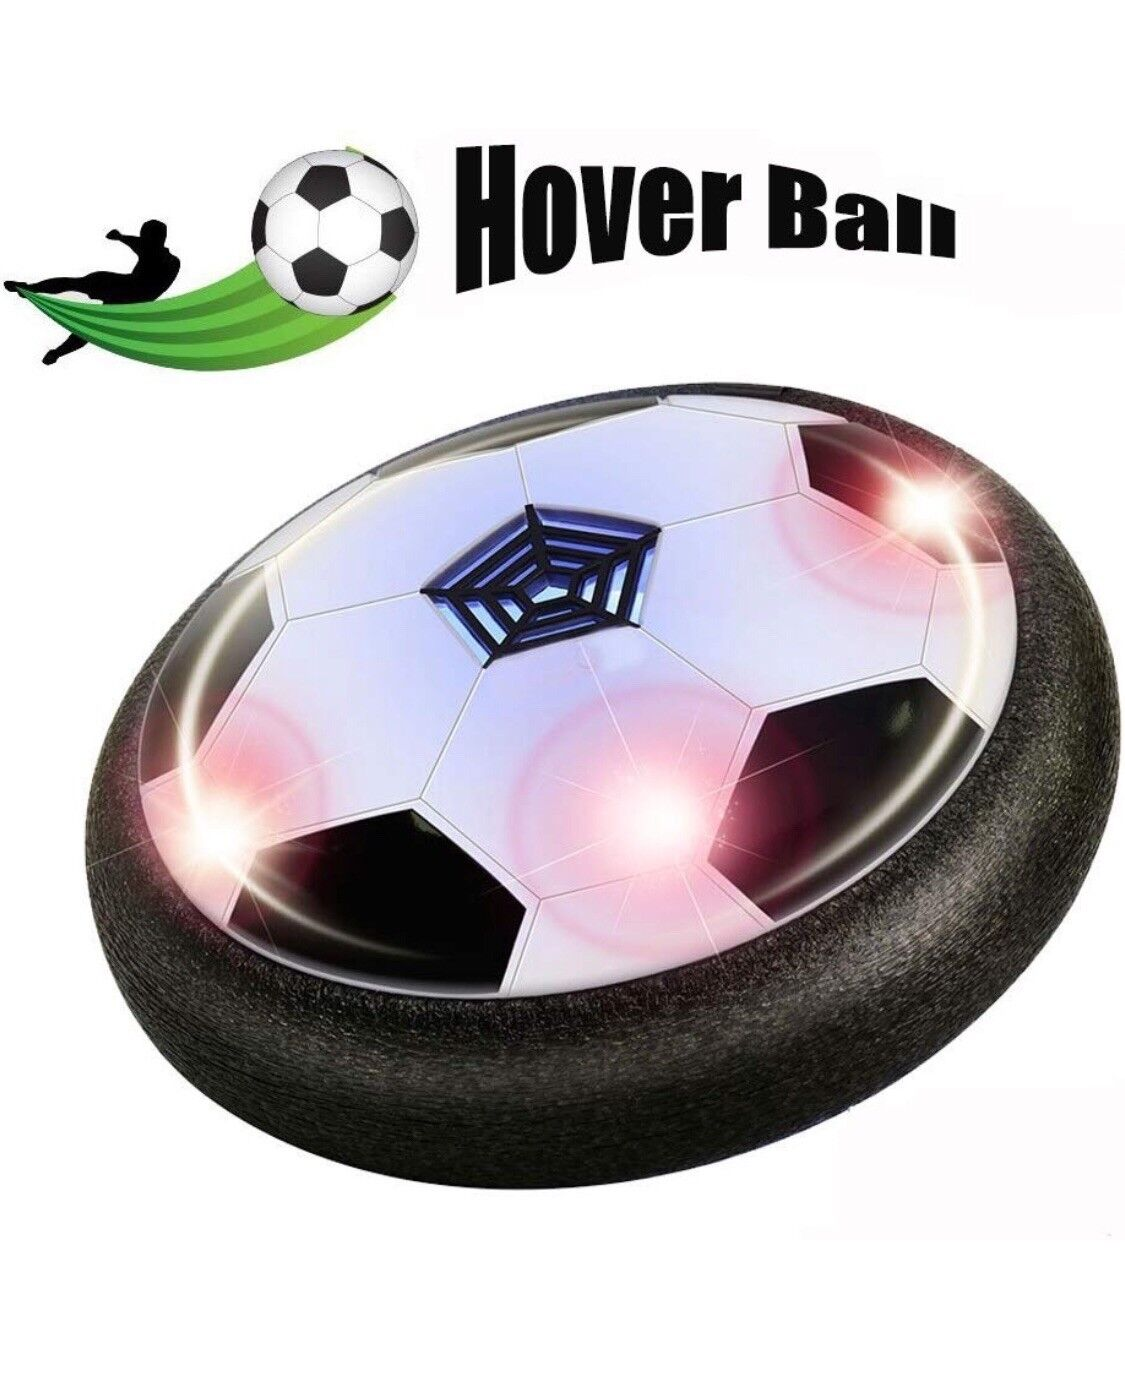 Air Power Soccer Light up LED Hover Ball for Indoor Football Gliding on Air New